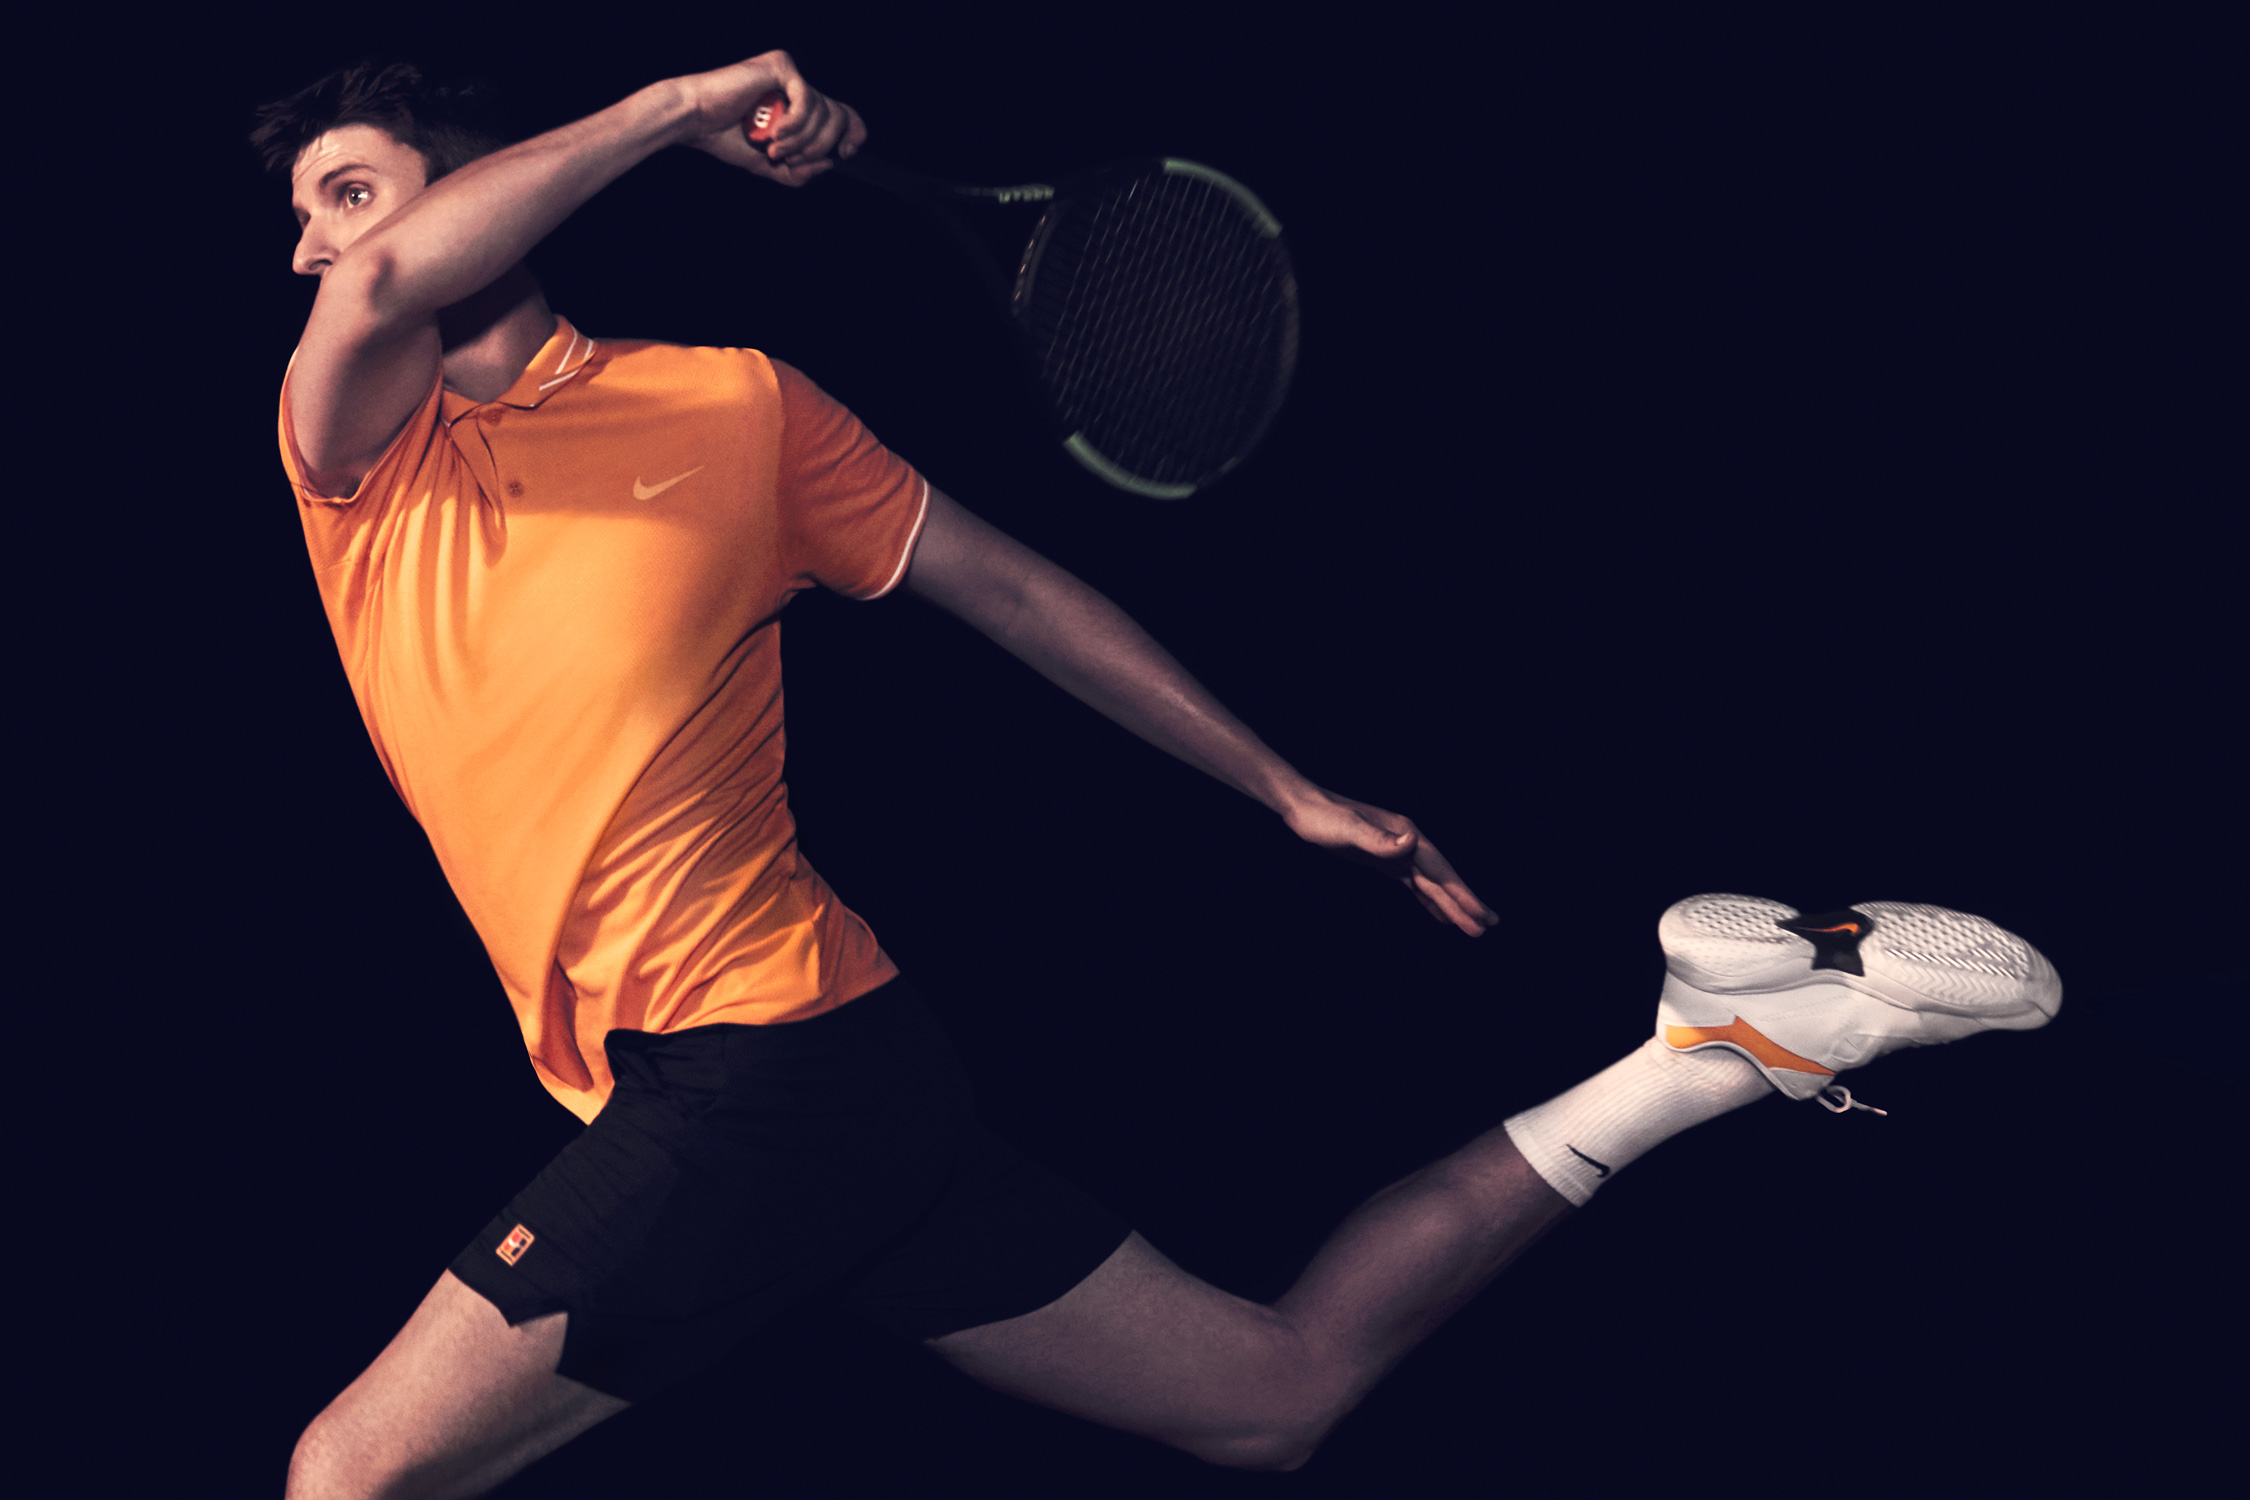 Nike Tennis  - Stephen Denton Photography - Phoenix AZ Commercial Photographer